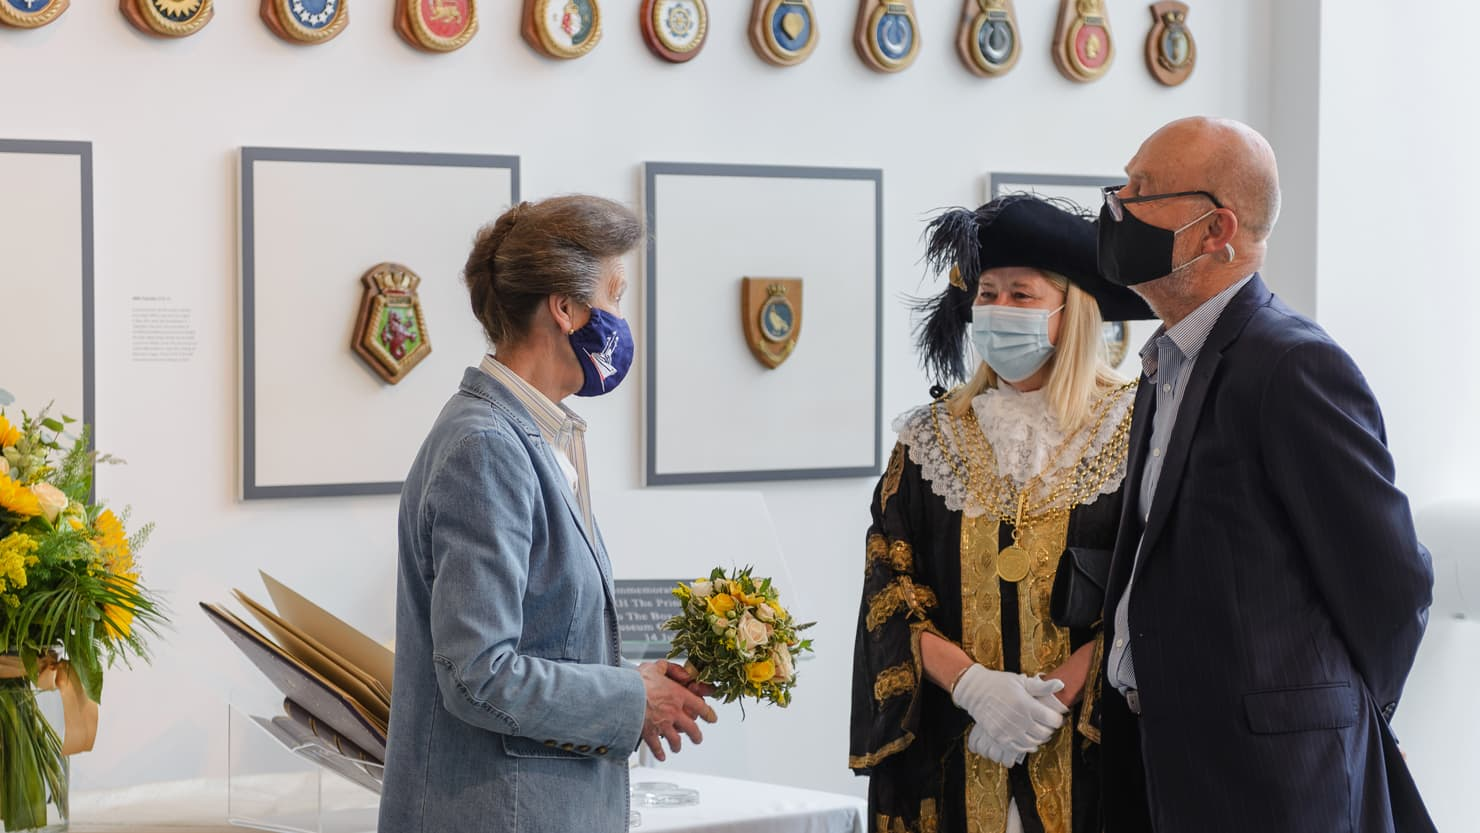 HRH The Princess Royal with a bouquet of flowers